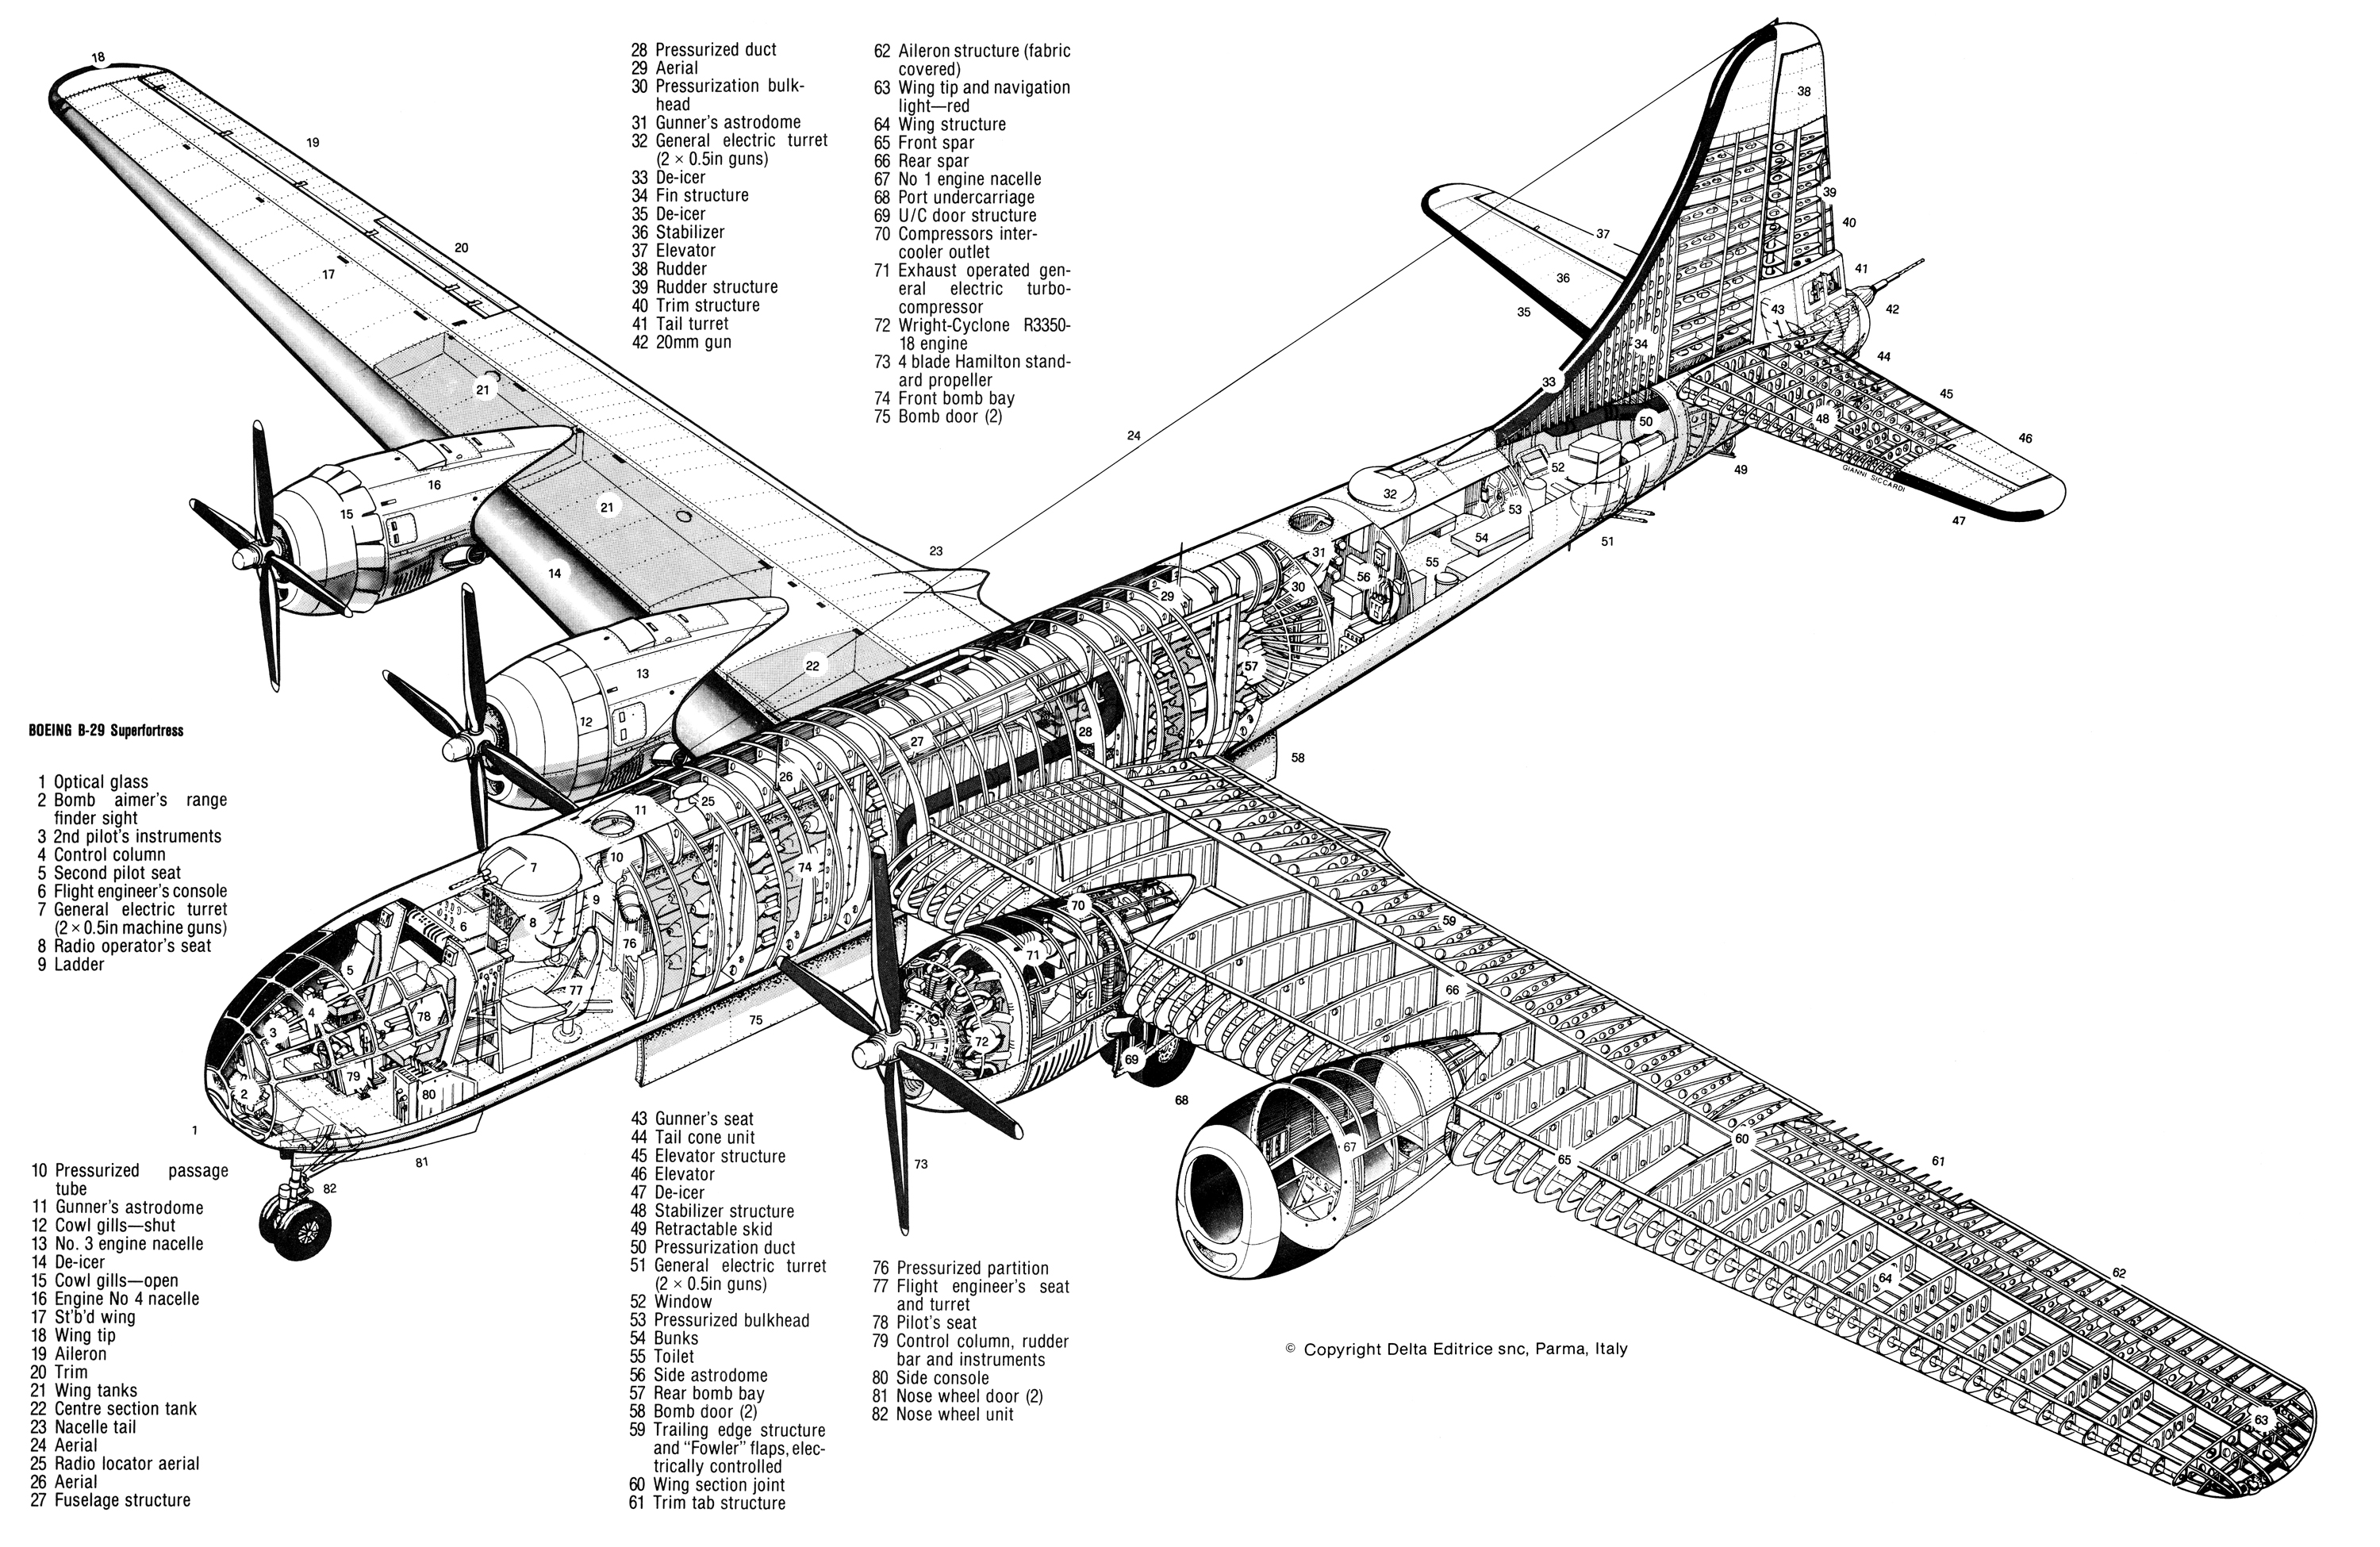 Boeing Wiring Diagrams Showing Post Media For Aircraft Ge Oven Diagram Jdp37 Schematic Gunpack Rank The Ryno V Schematics Vidim